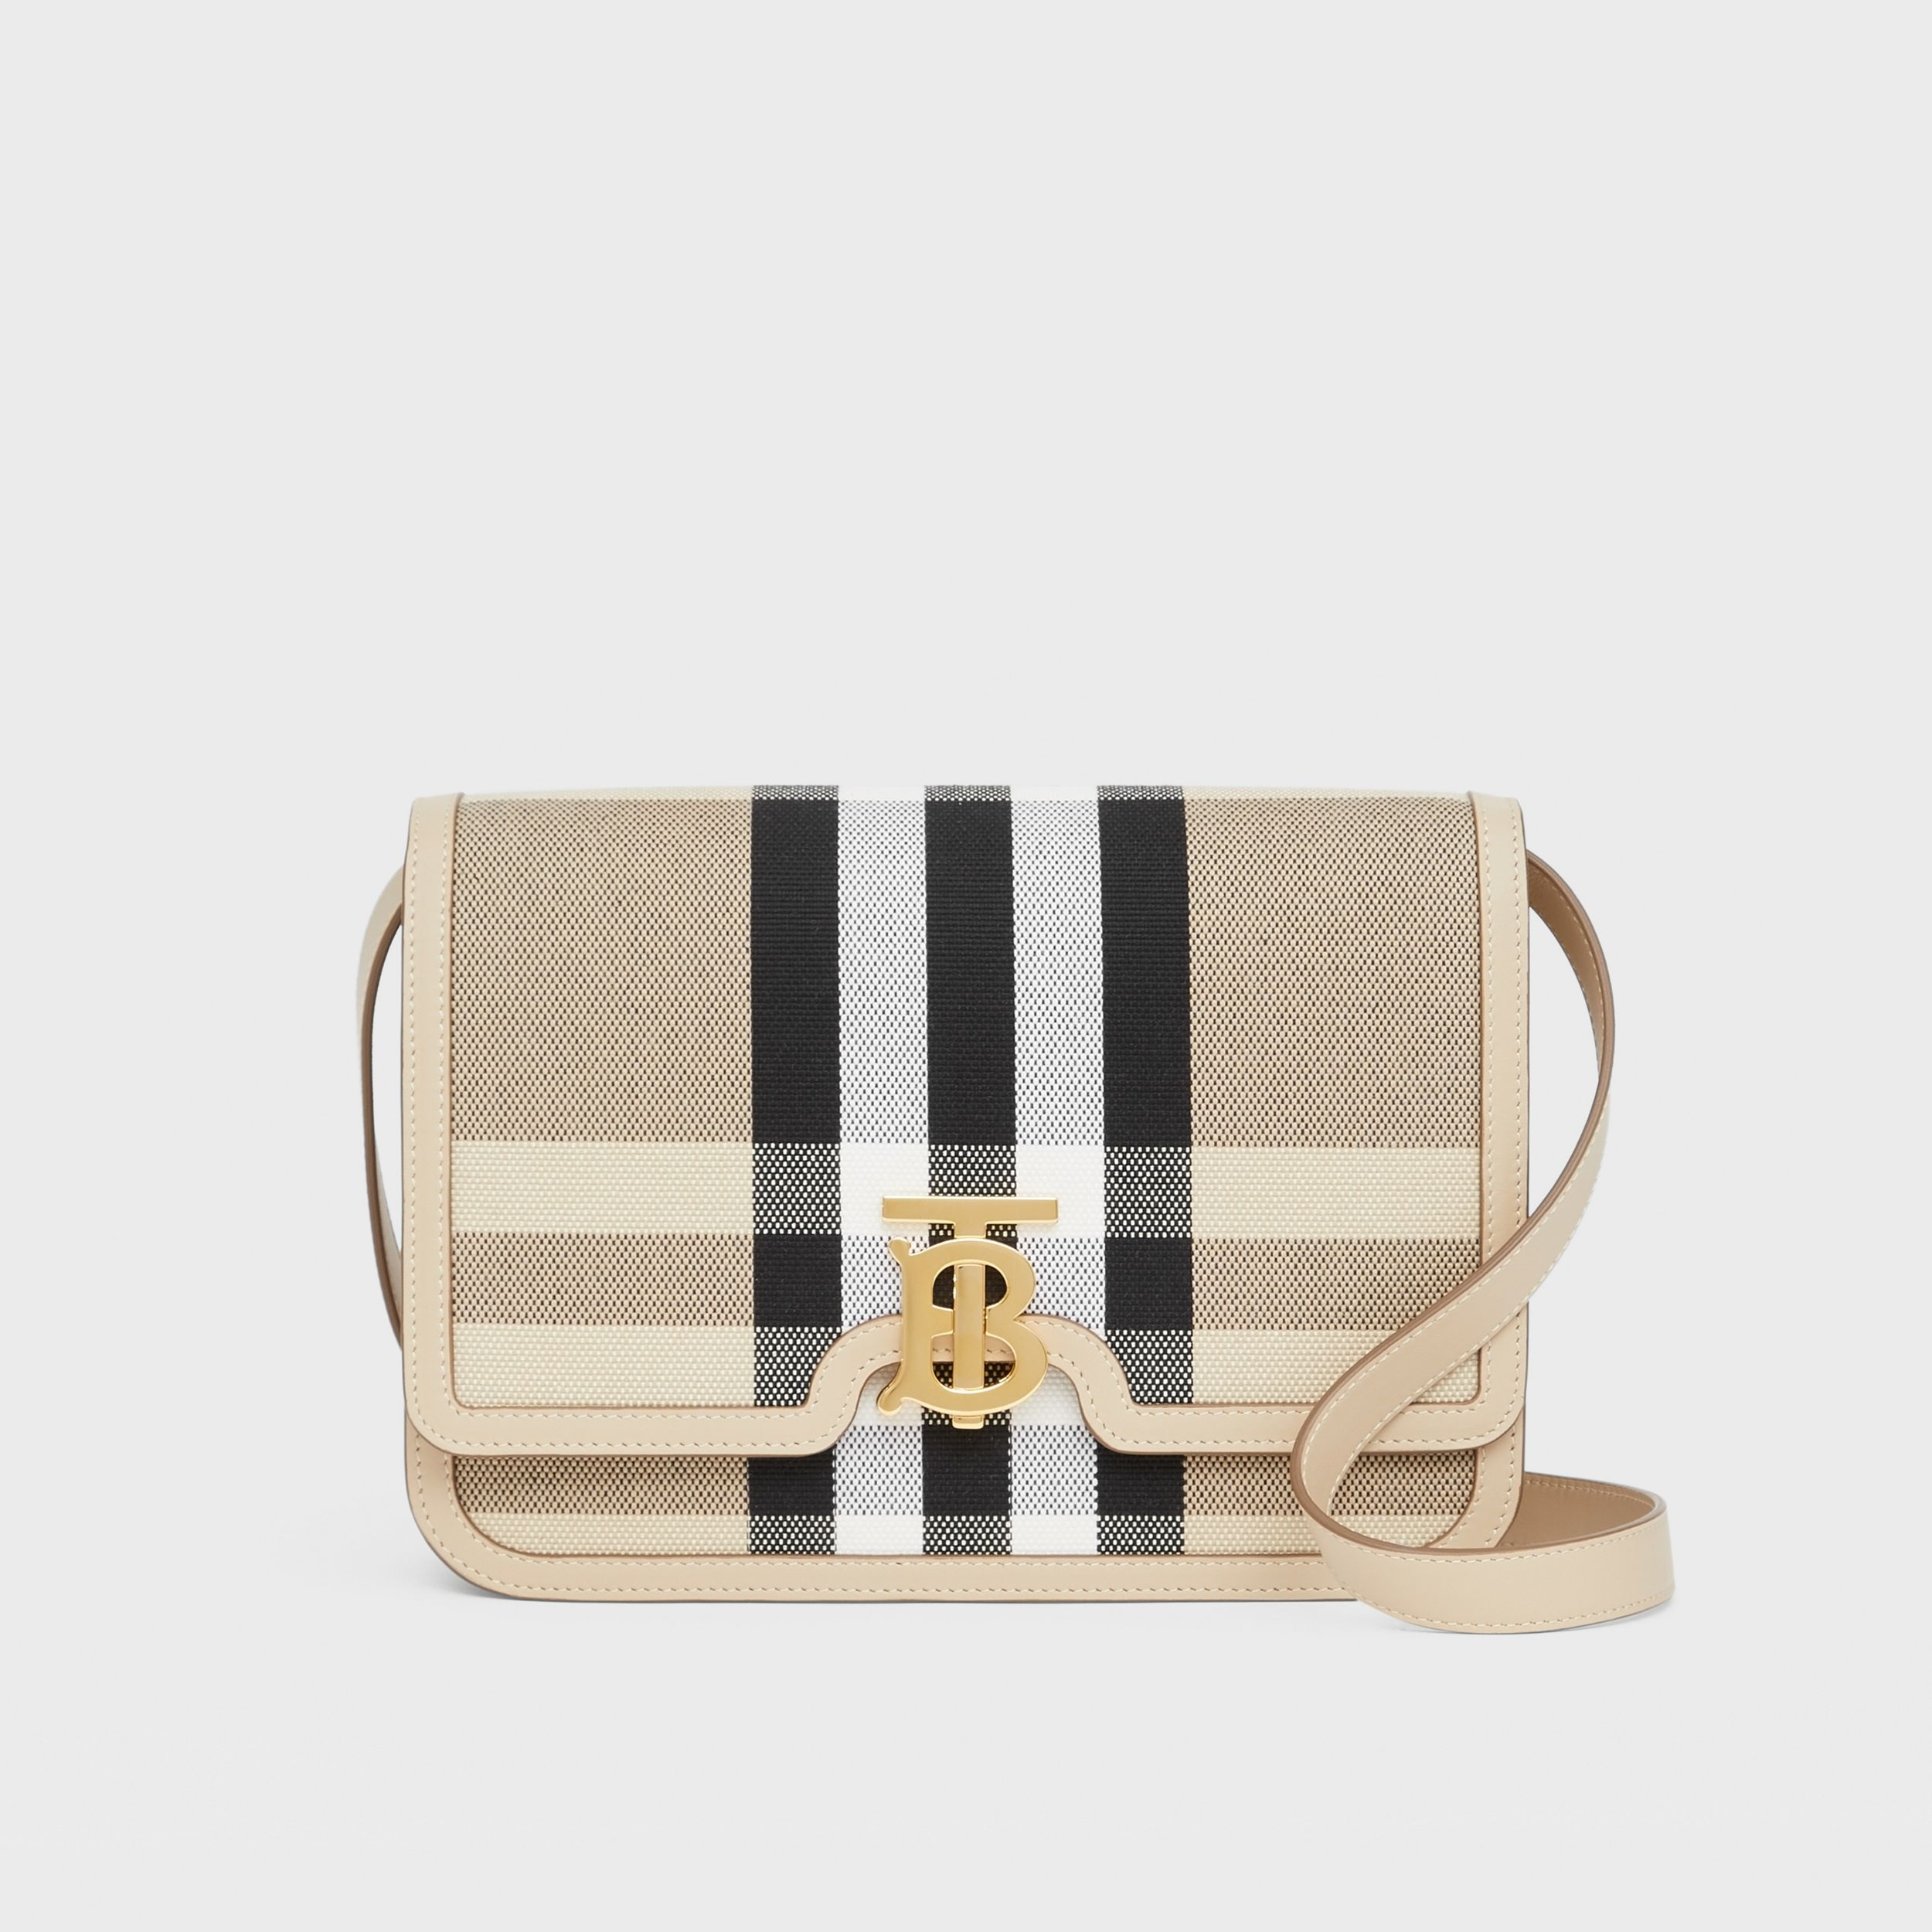 Medium Check Canvas and Leather TB Bag in Dusty Sand/soft Fawn - Women | Burberry - 1